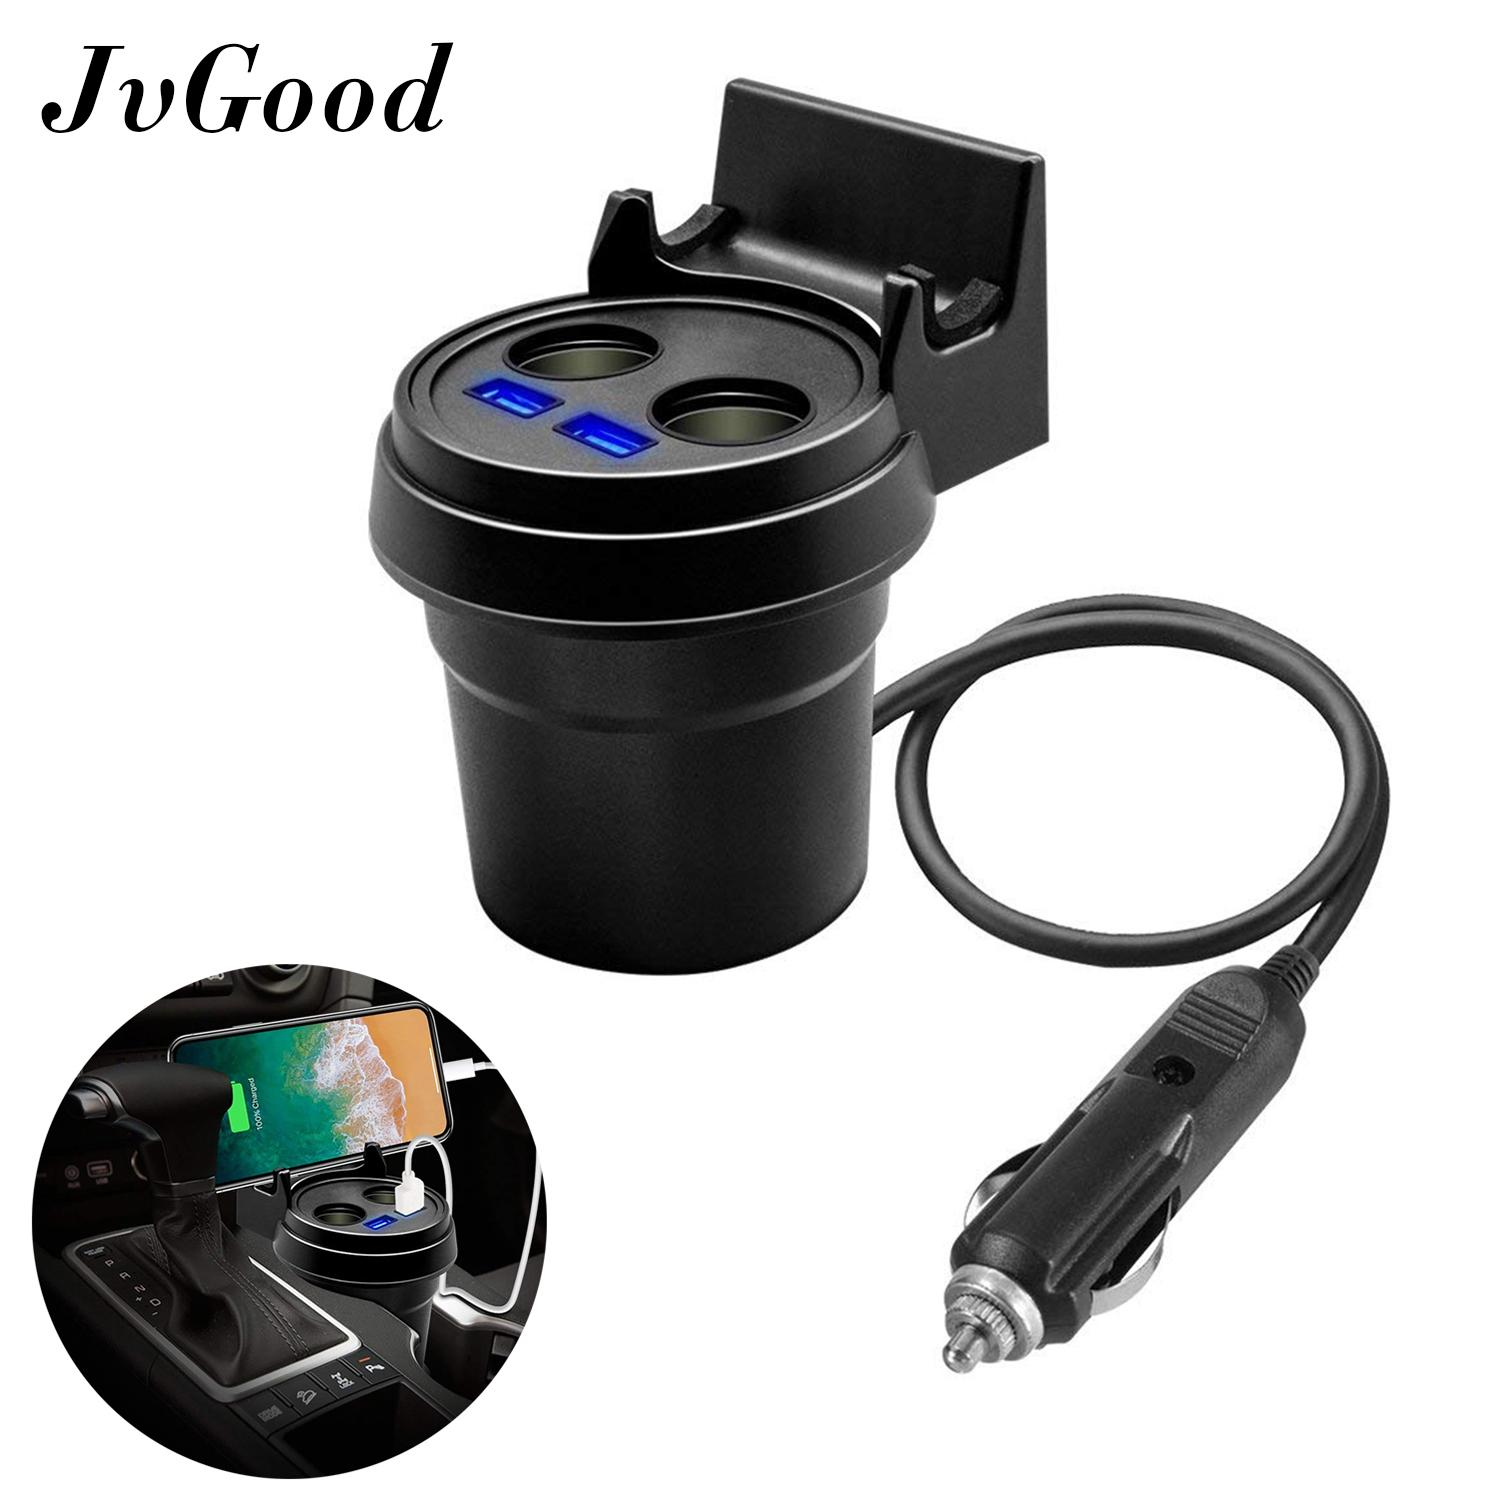 Jvgood Car Cup Charger 3 In 1 Quick Charge Travel Cup Holder 12v-24v 3.1a 2 Port Usb Chargers & 2 Car Charger Sockets & Free Phone Holder With Led Display Measuring Car Voltage For Multiple Devices By Jvgood.